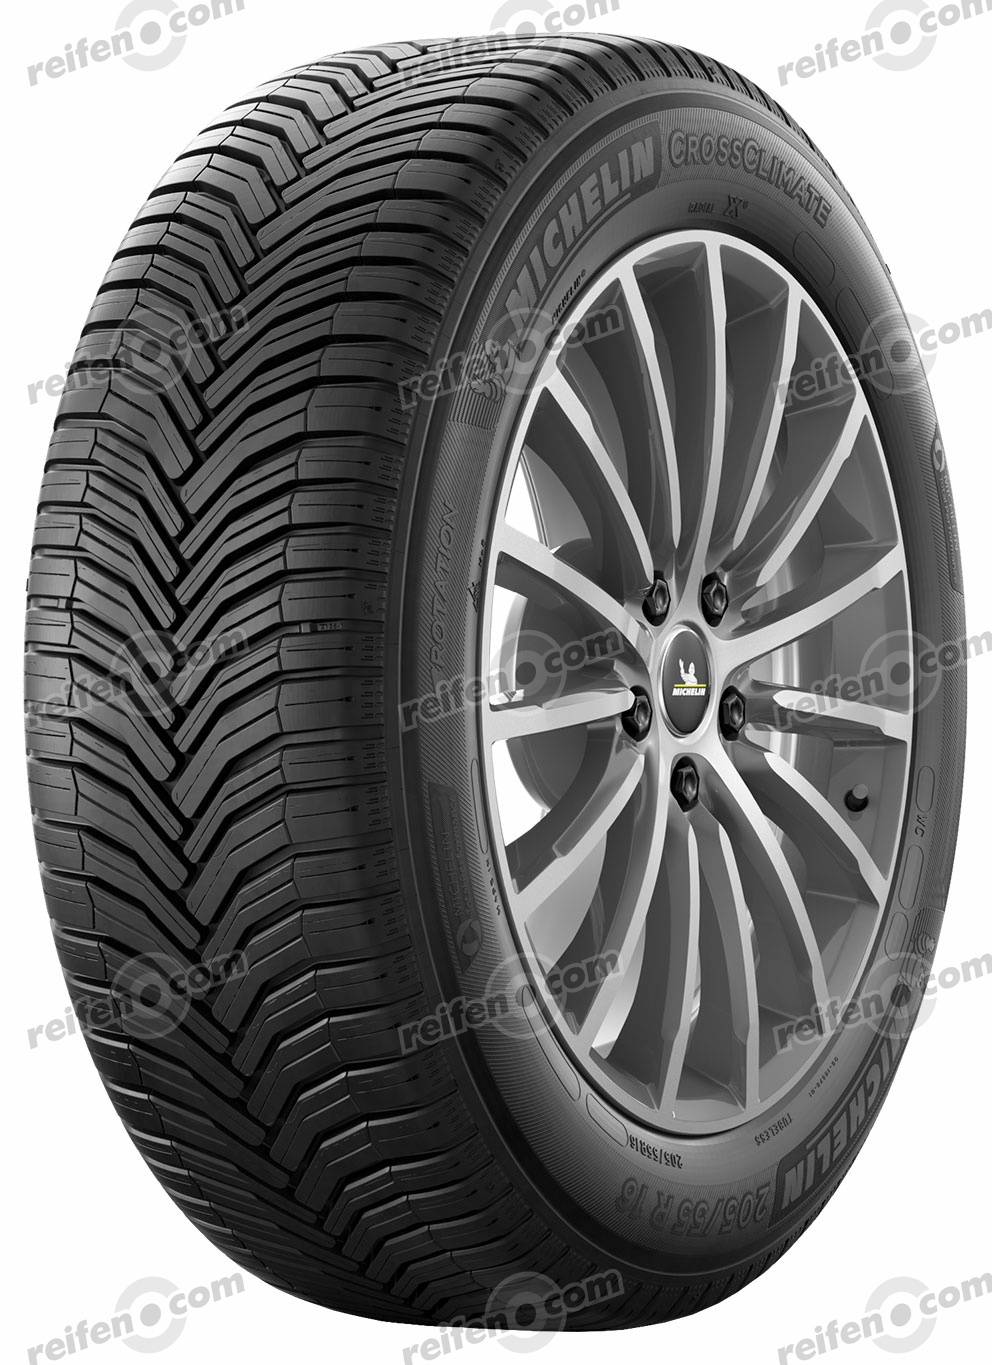 185/65 R15 92V Cross Climate+ XL  Cross Climate+ XL